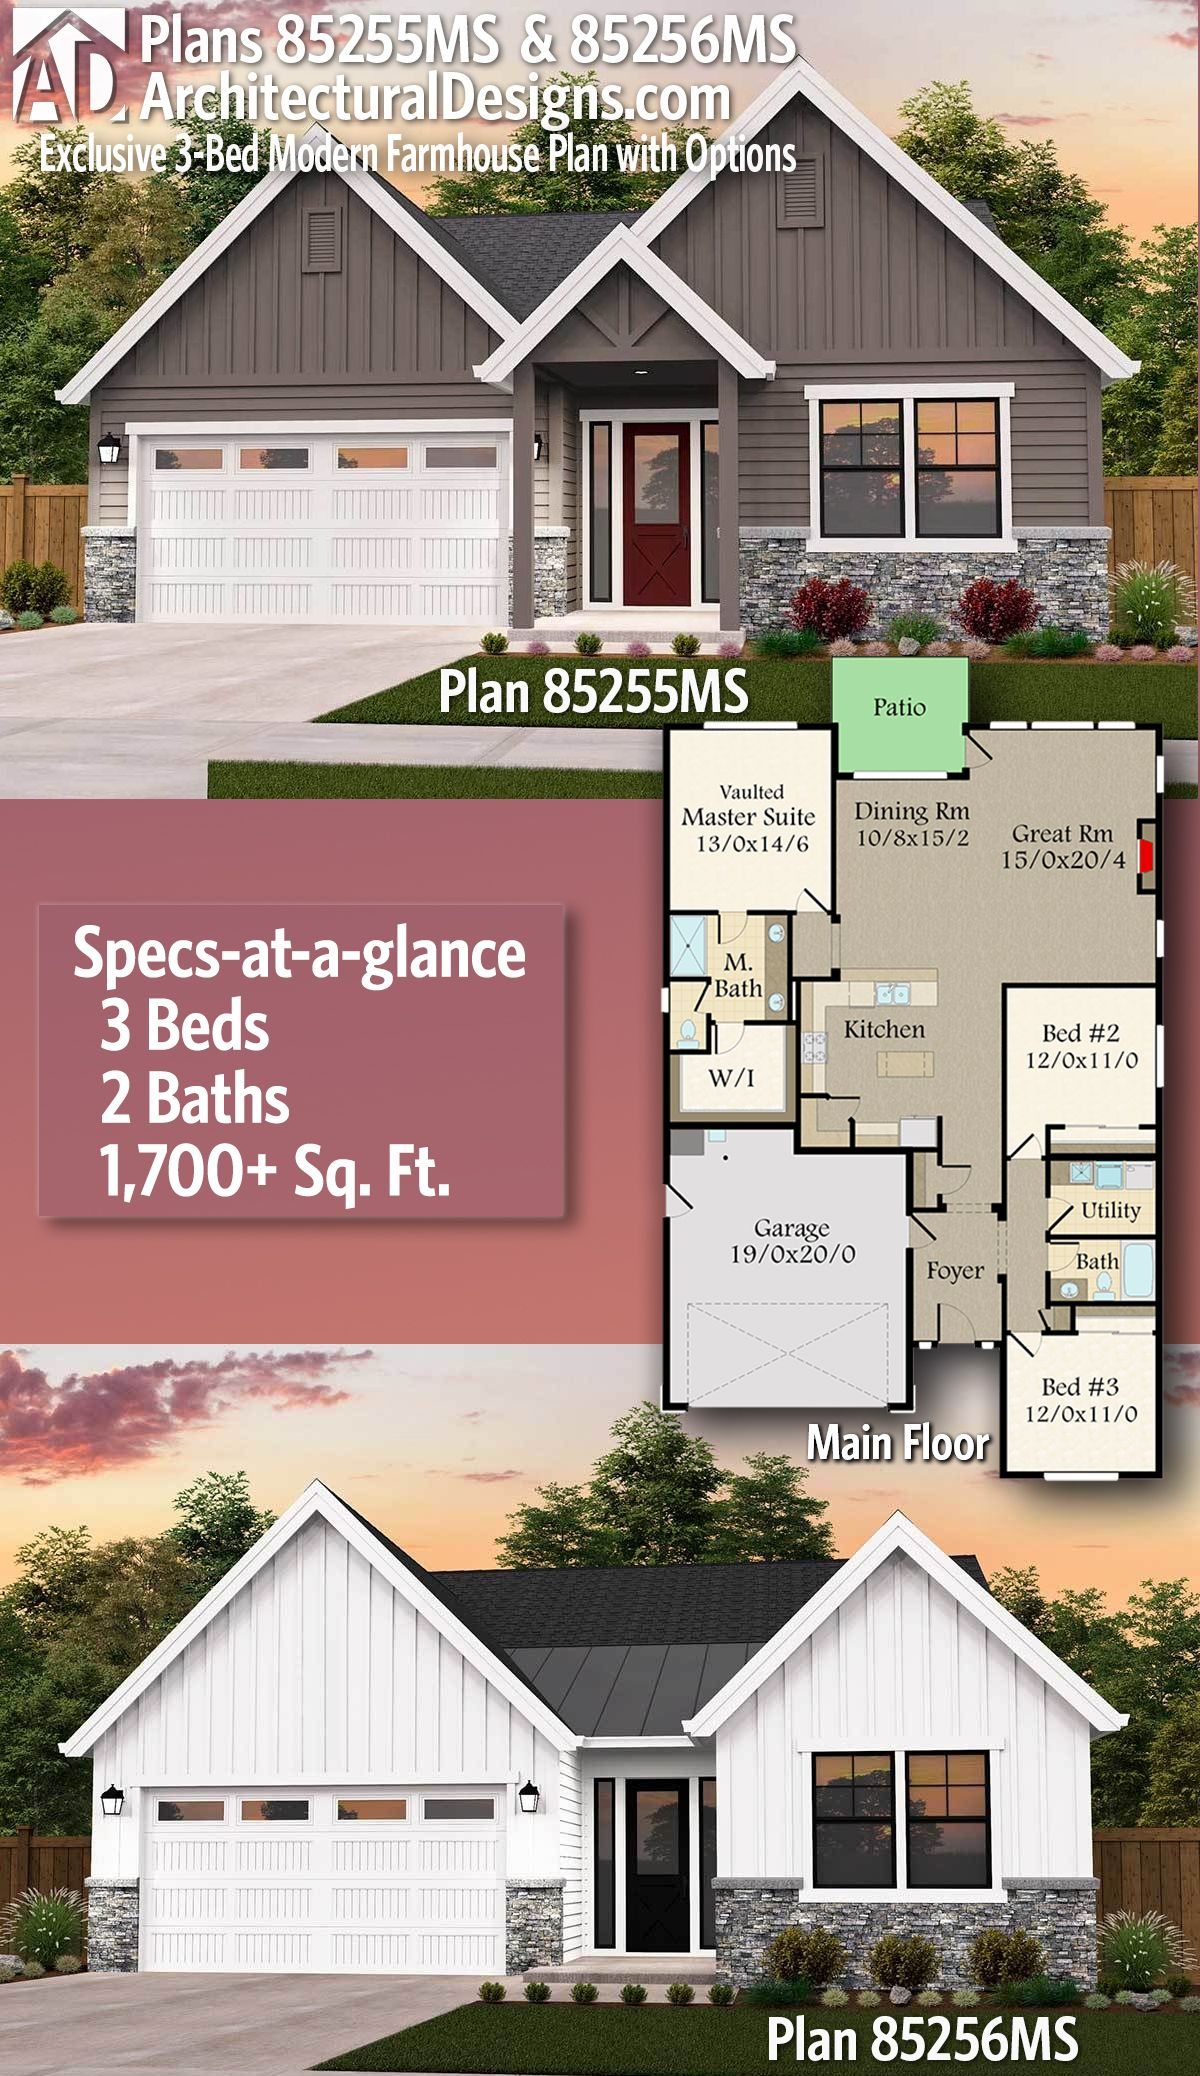 Architectural Designs Exclusive Affordable Farmhouse Plan 85255ms 85256ms 3 Beds 2 Baths Affordable House Plans Farmhouse Plans Modern Farmhouse Plans